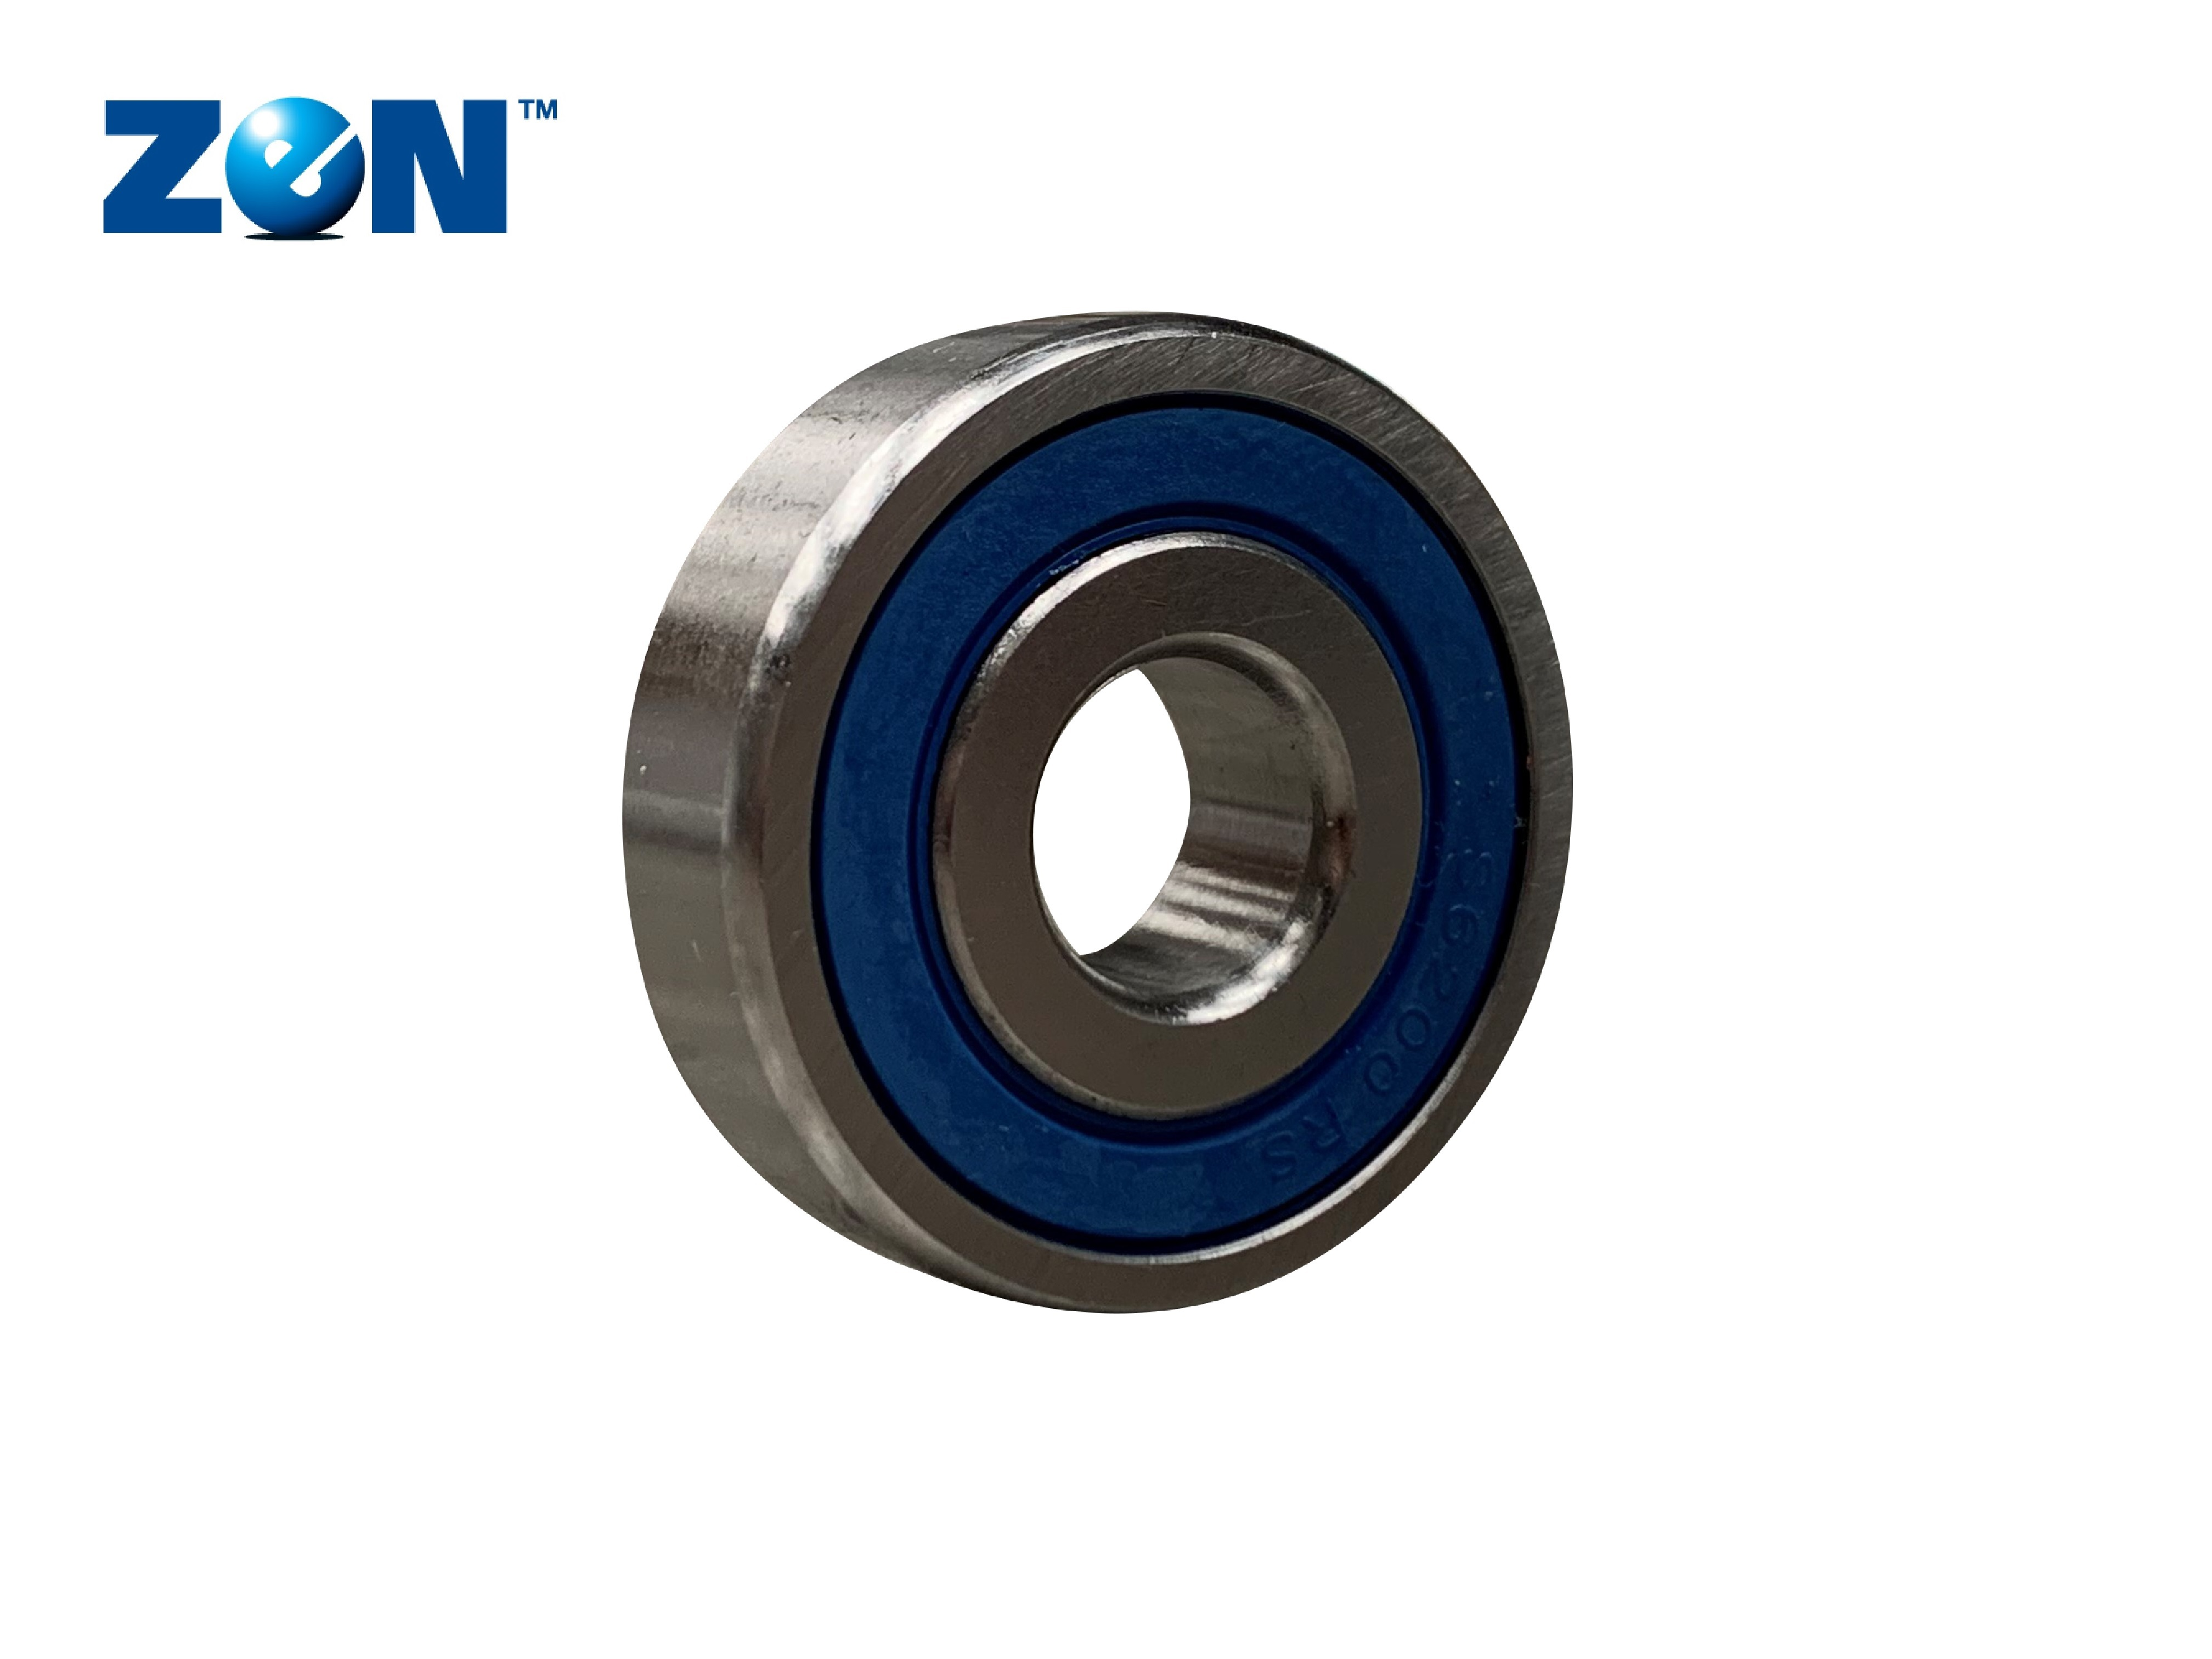 ZEN S6208-2RS Stainless Steel Sealed Ball Bearing 40mm x 80mm x 18mm